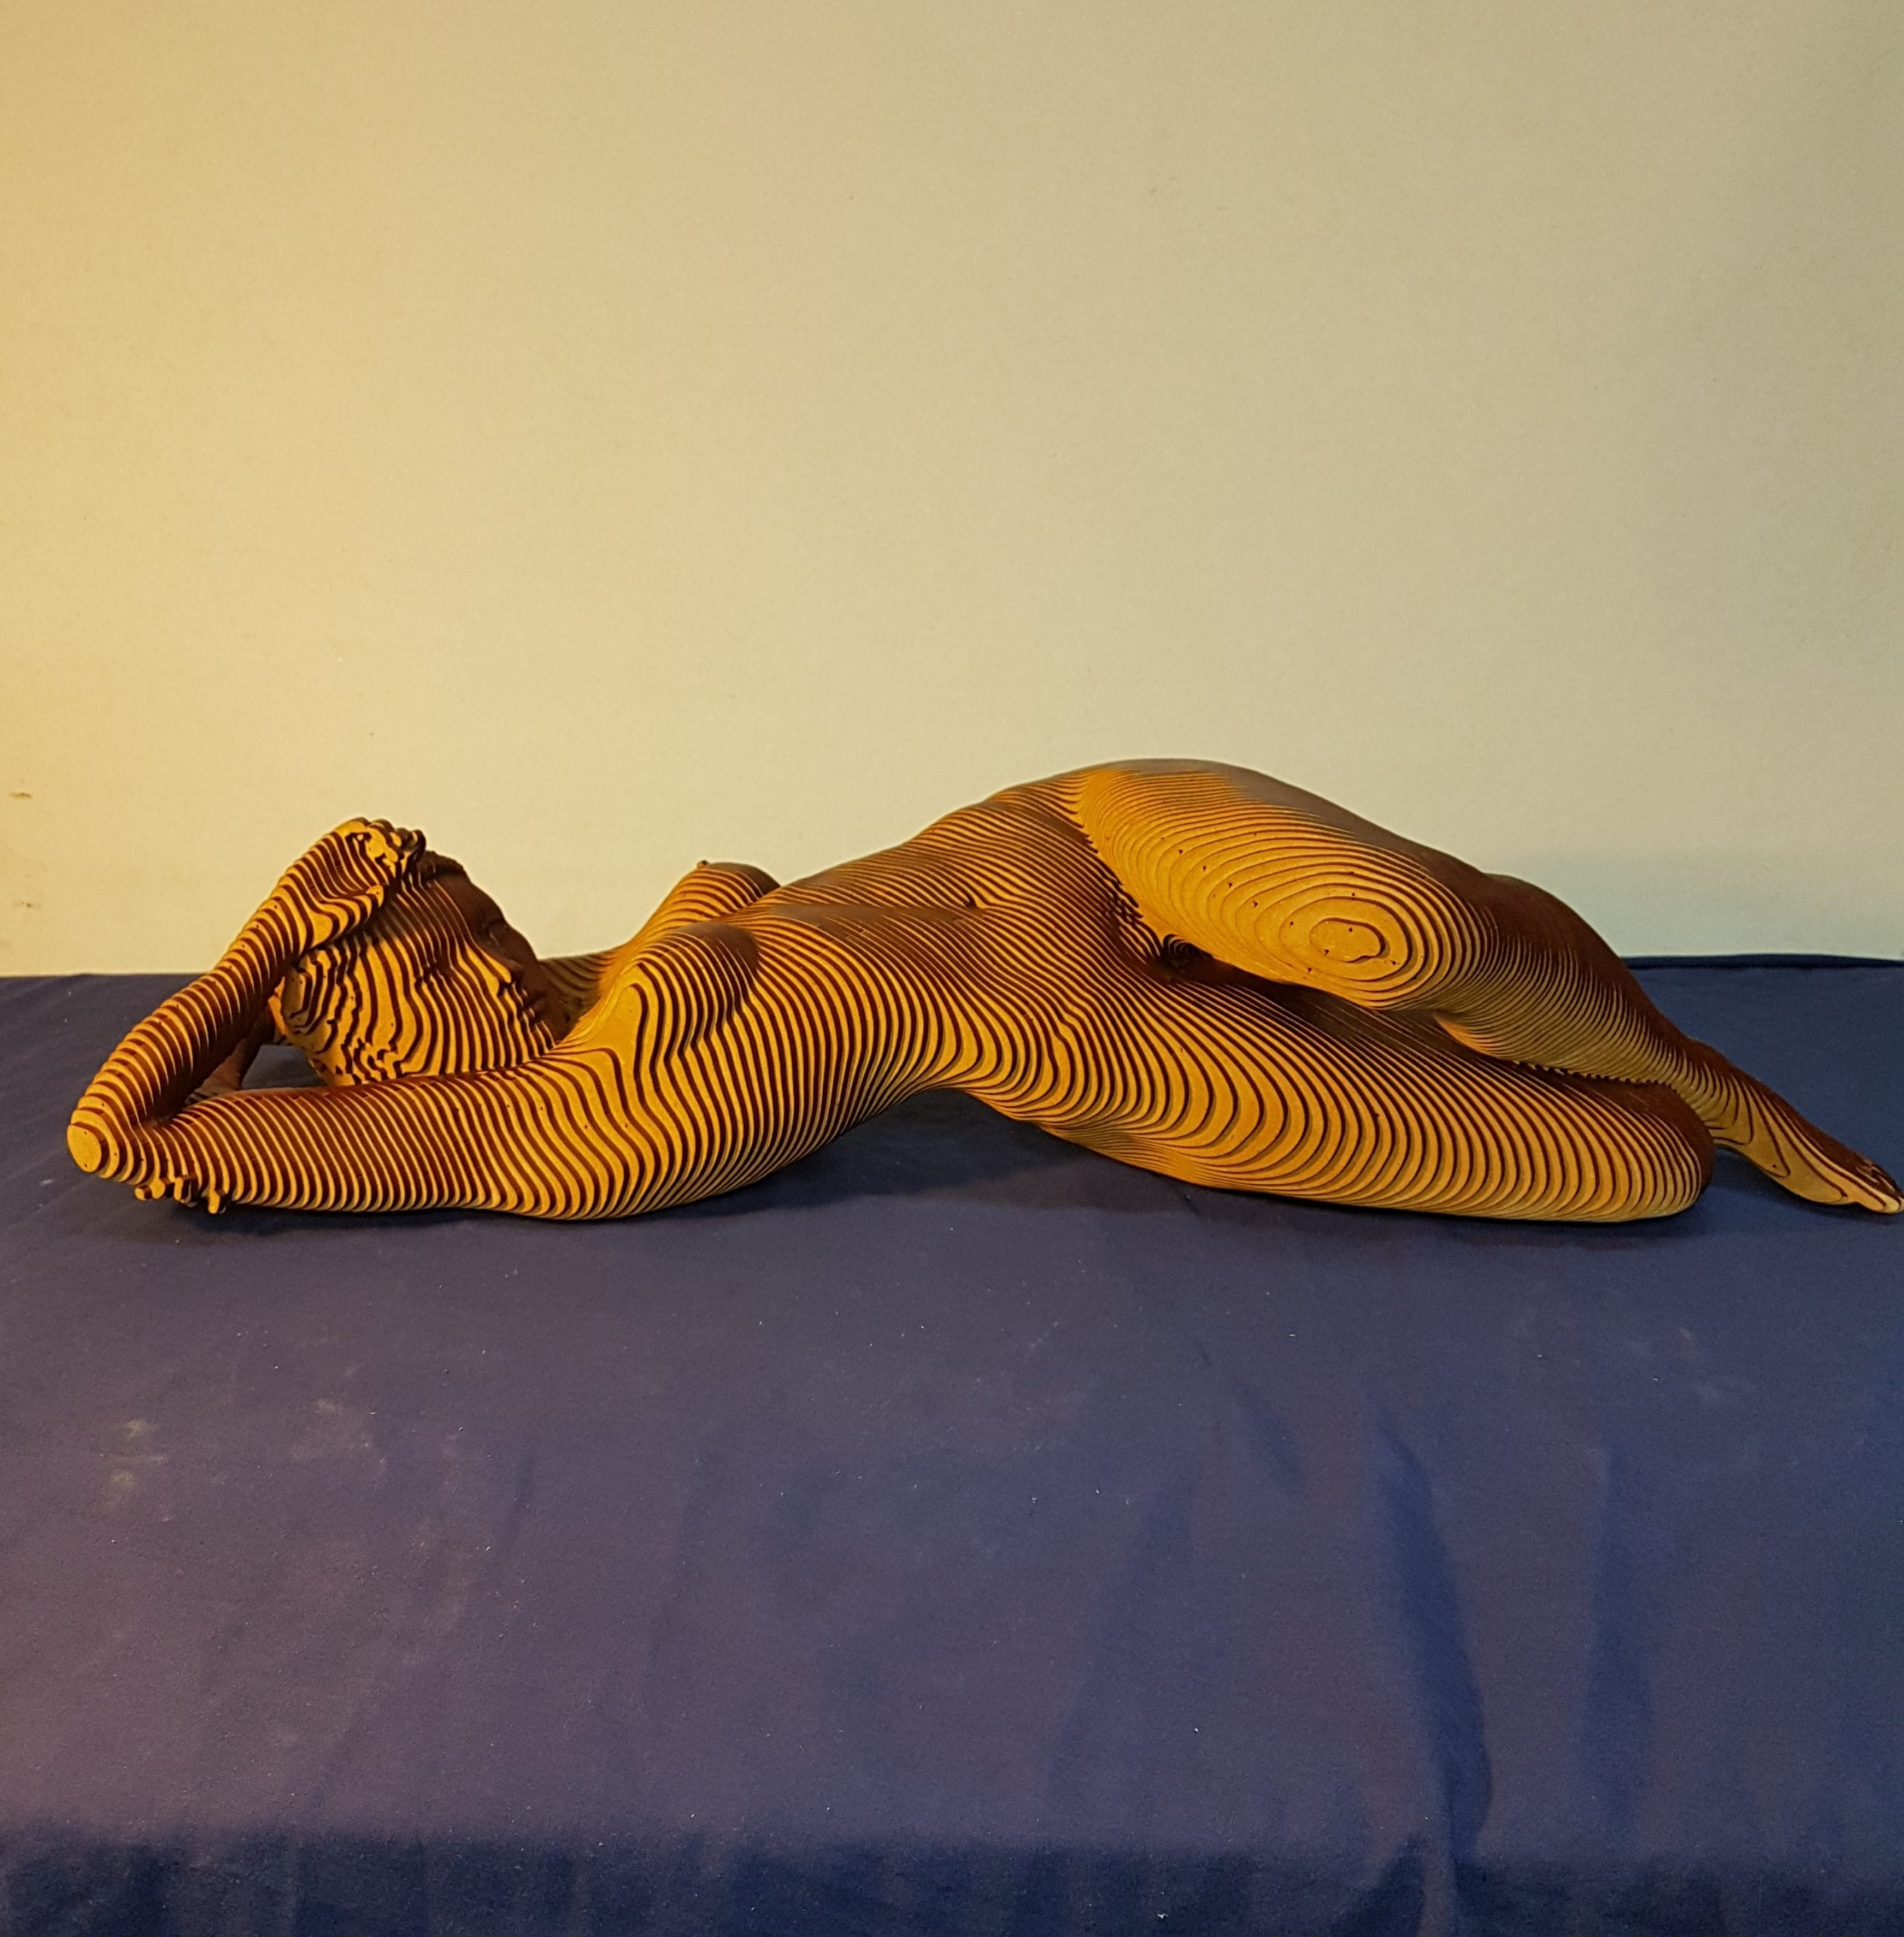 wooden sculpture of a nude woman reclining